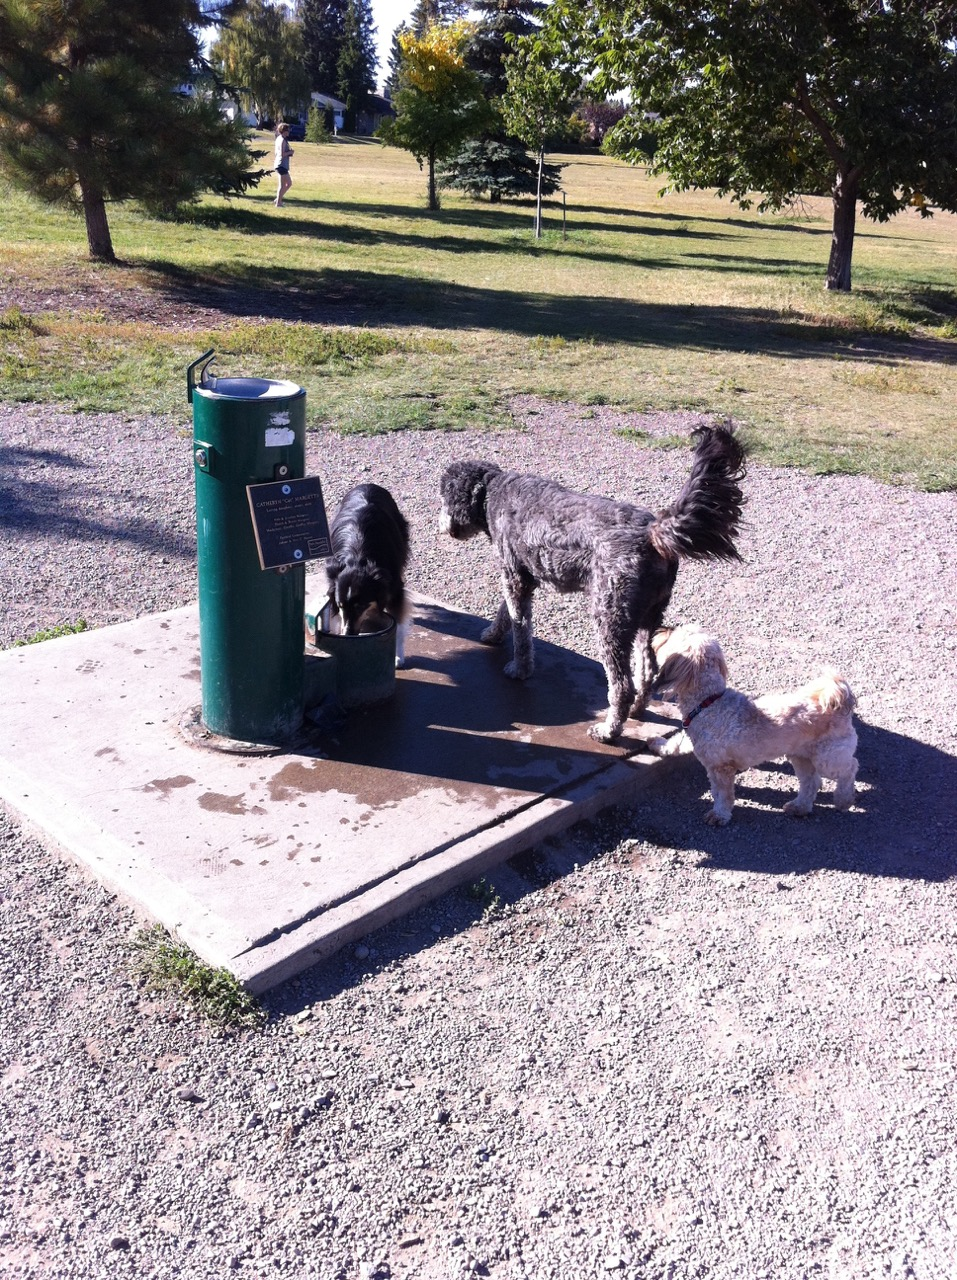 Dogs sharing water fountain as River Park.